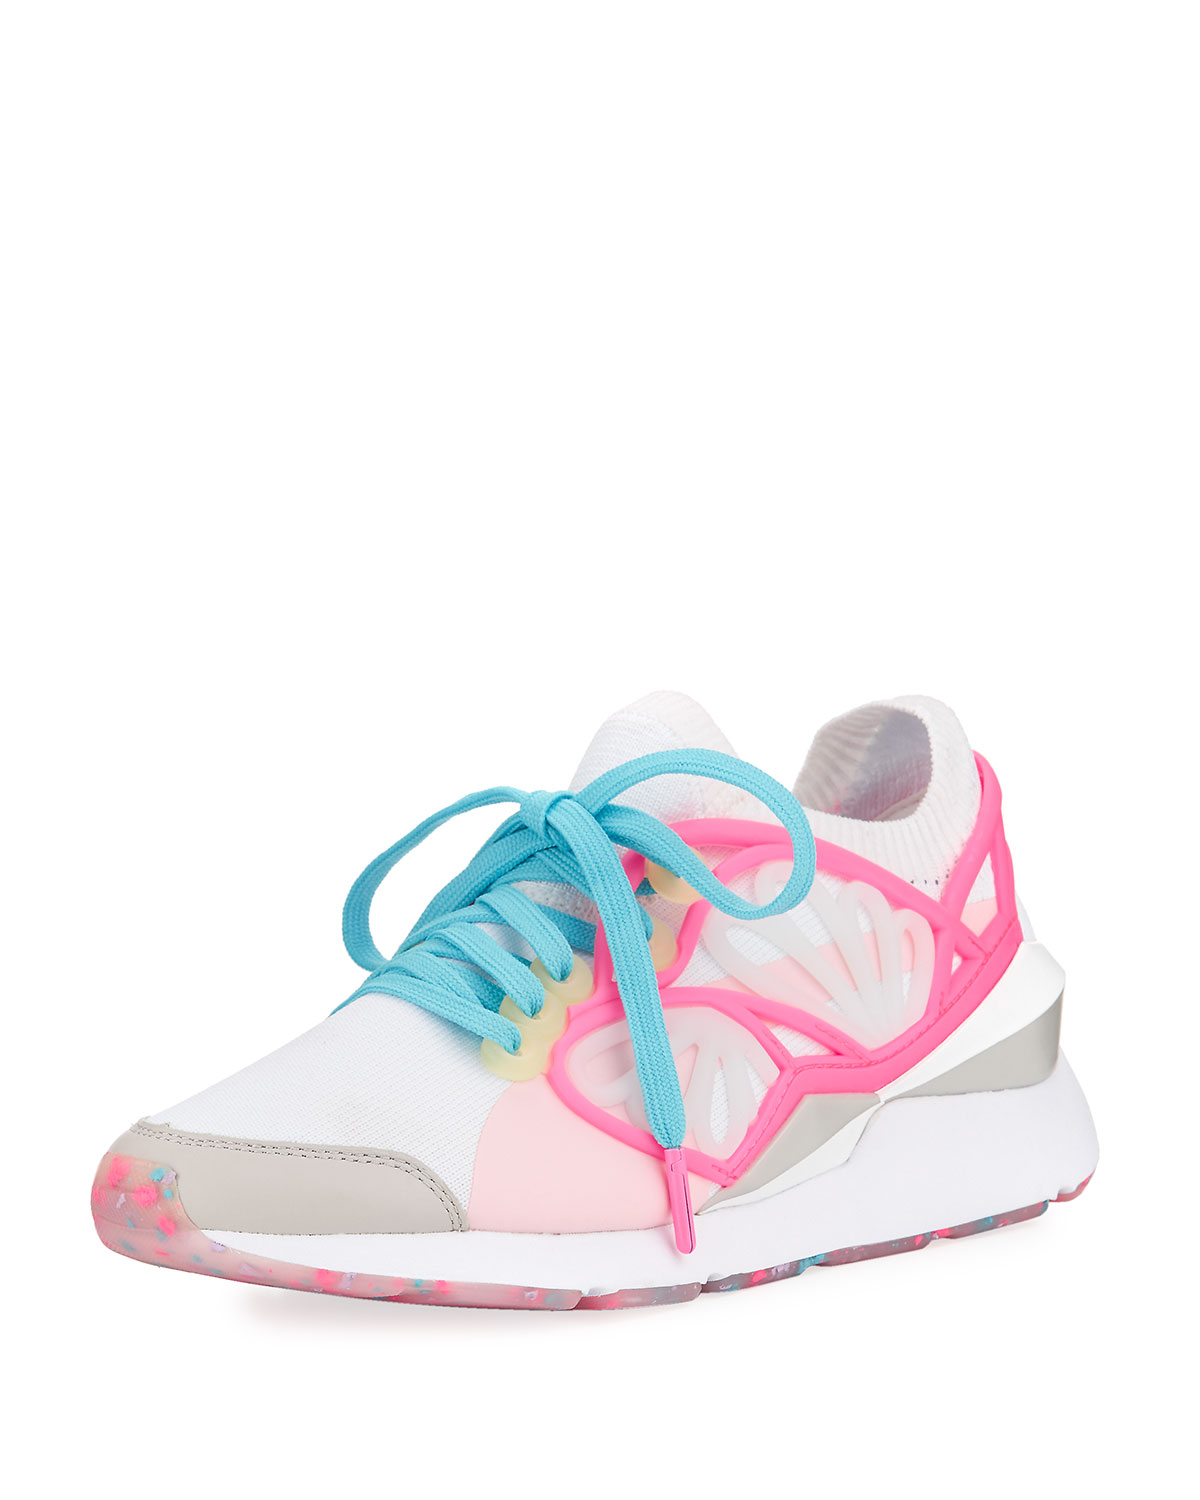 a2824d0010712d Puma Lace-Up Cage Fade Sneakers